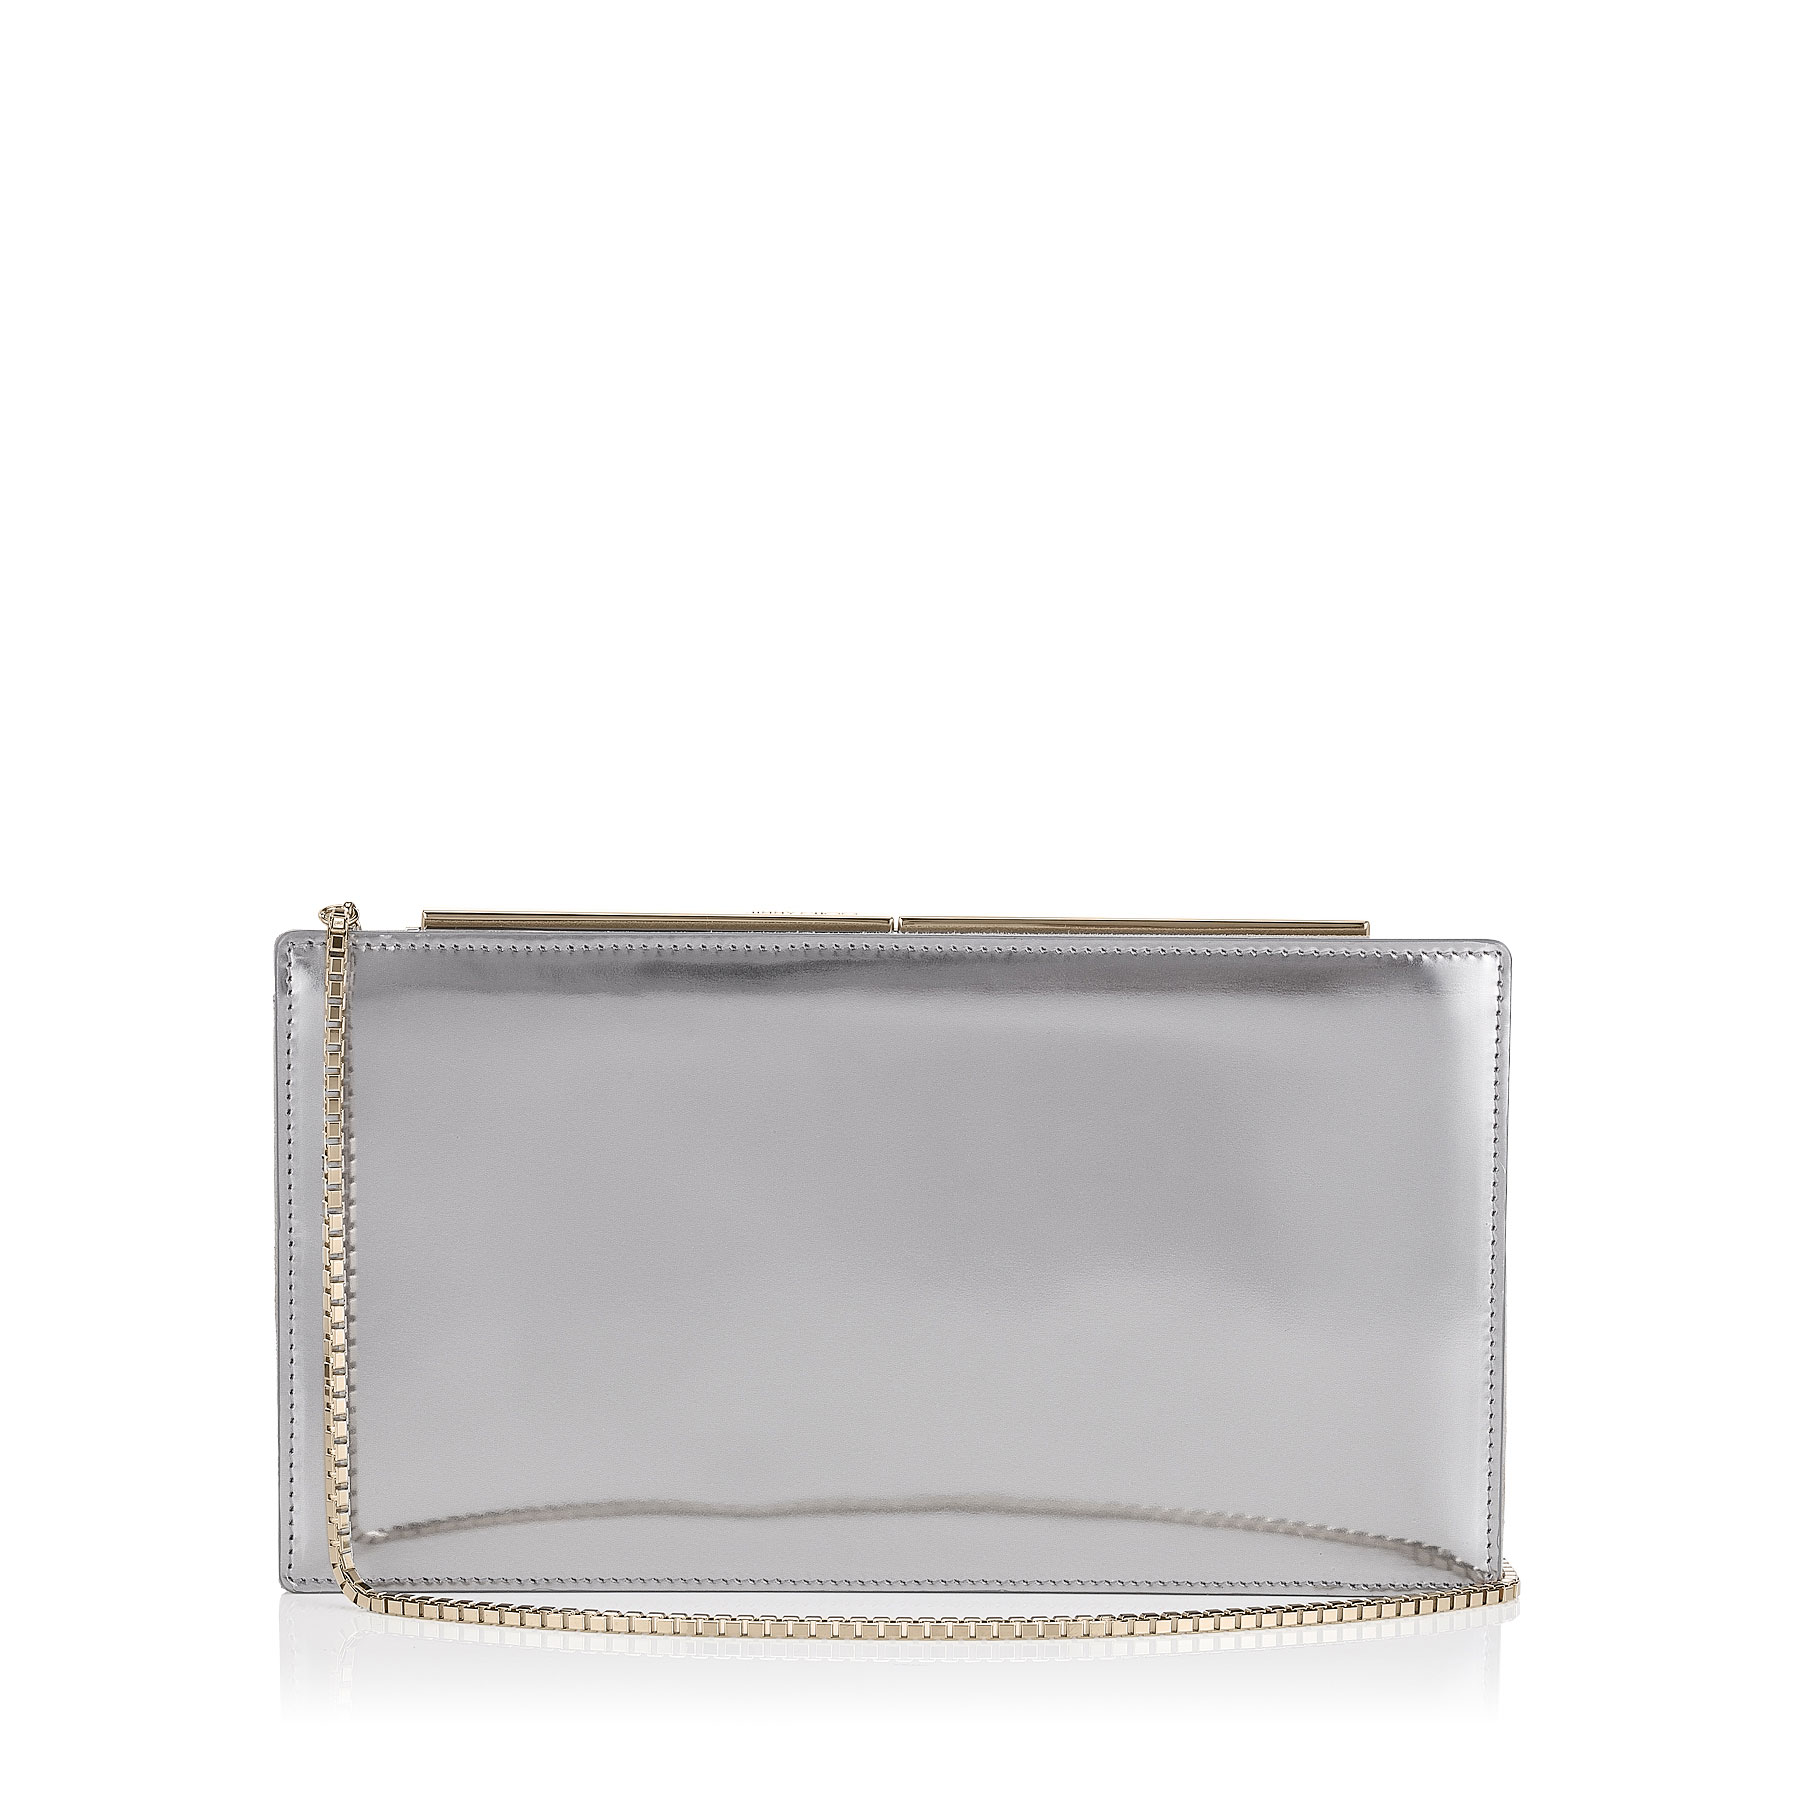 TUX Steel Mirror Leather and Suede Clutch Bag